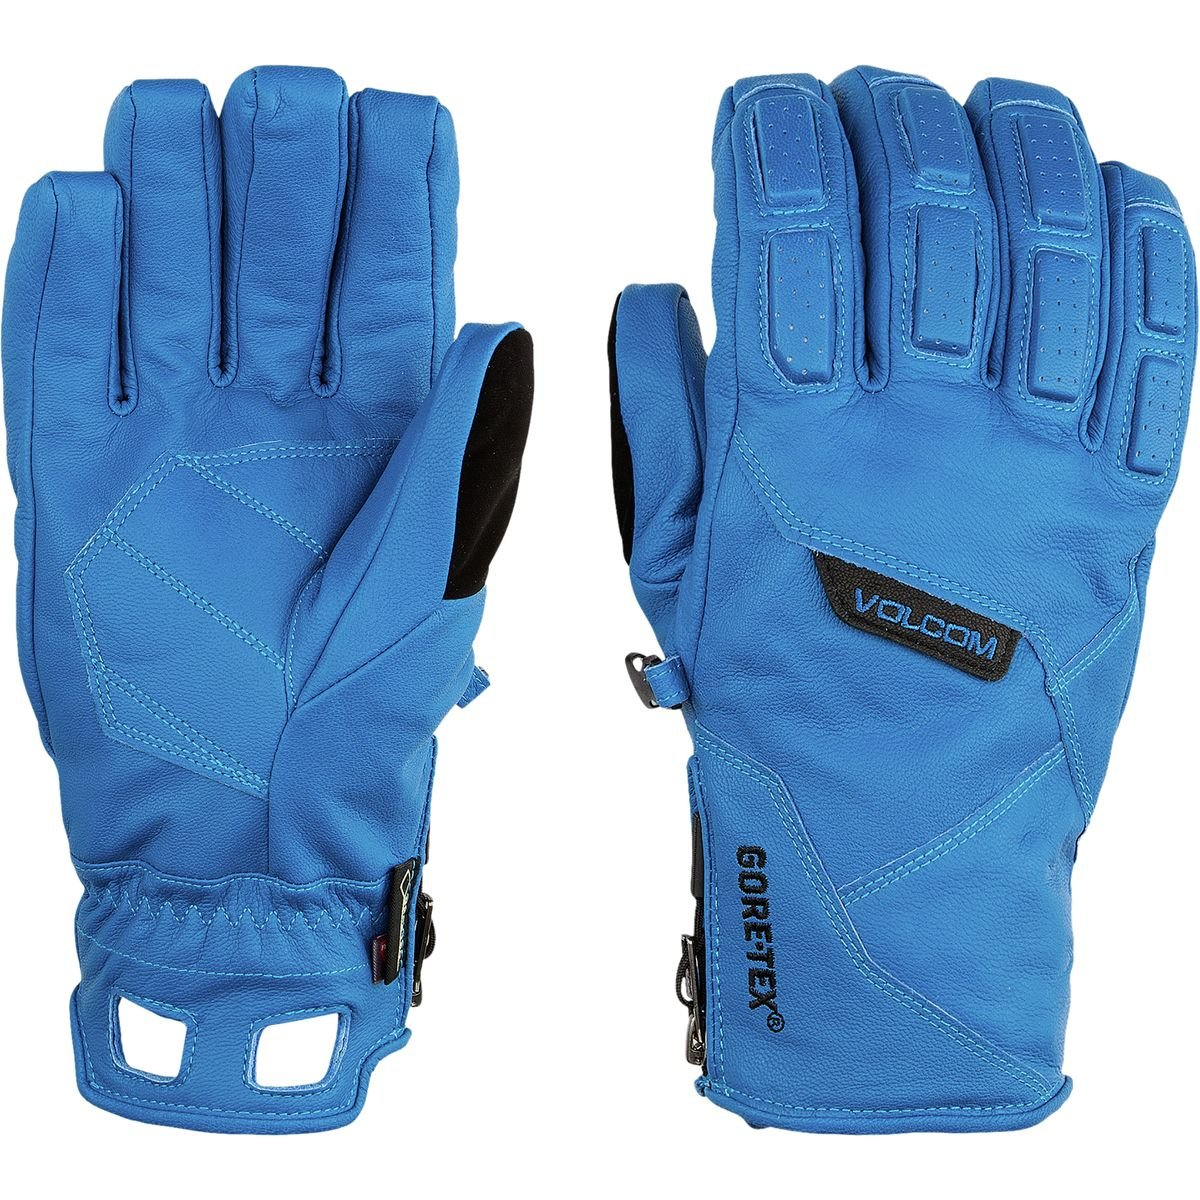 Volcom SERVICE GLOVE Winter 2016